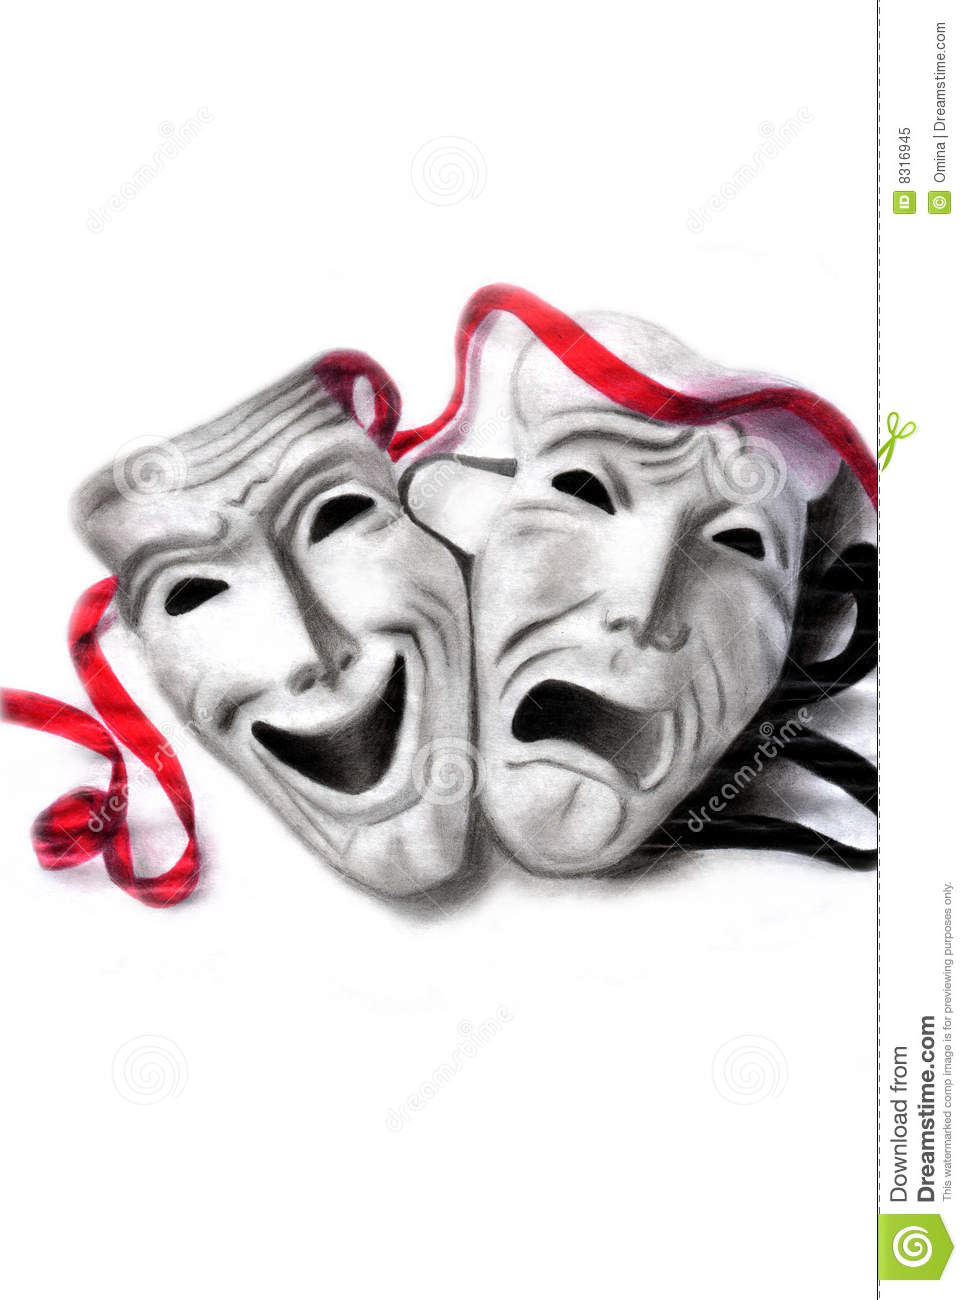 Theatre clipart theatre mask comedy tragedy Masks Vintage Stock tragedy Free